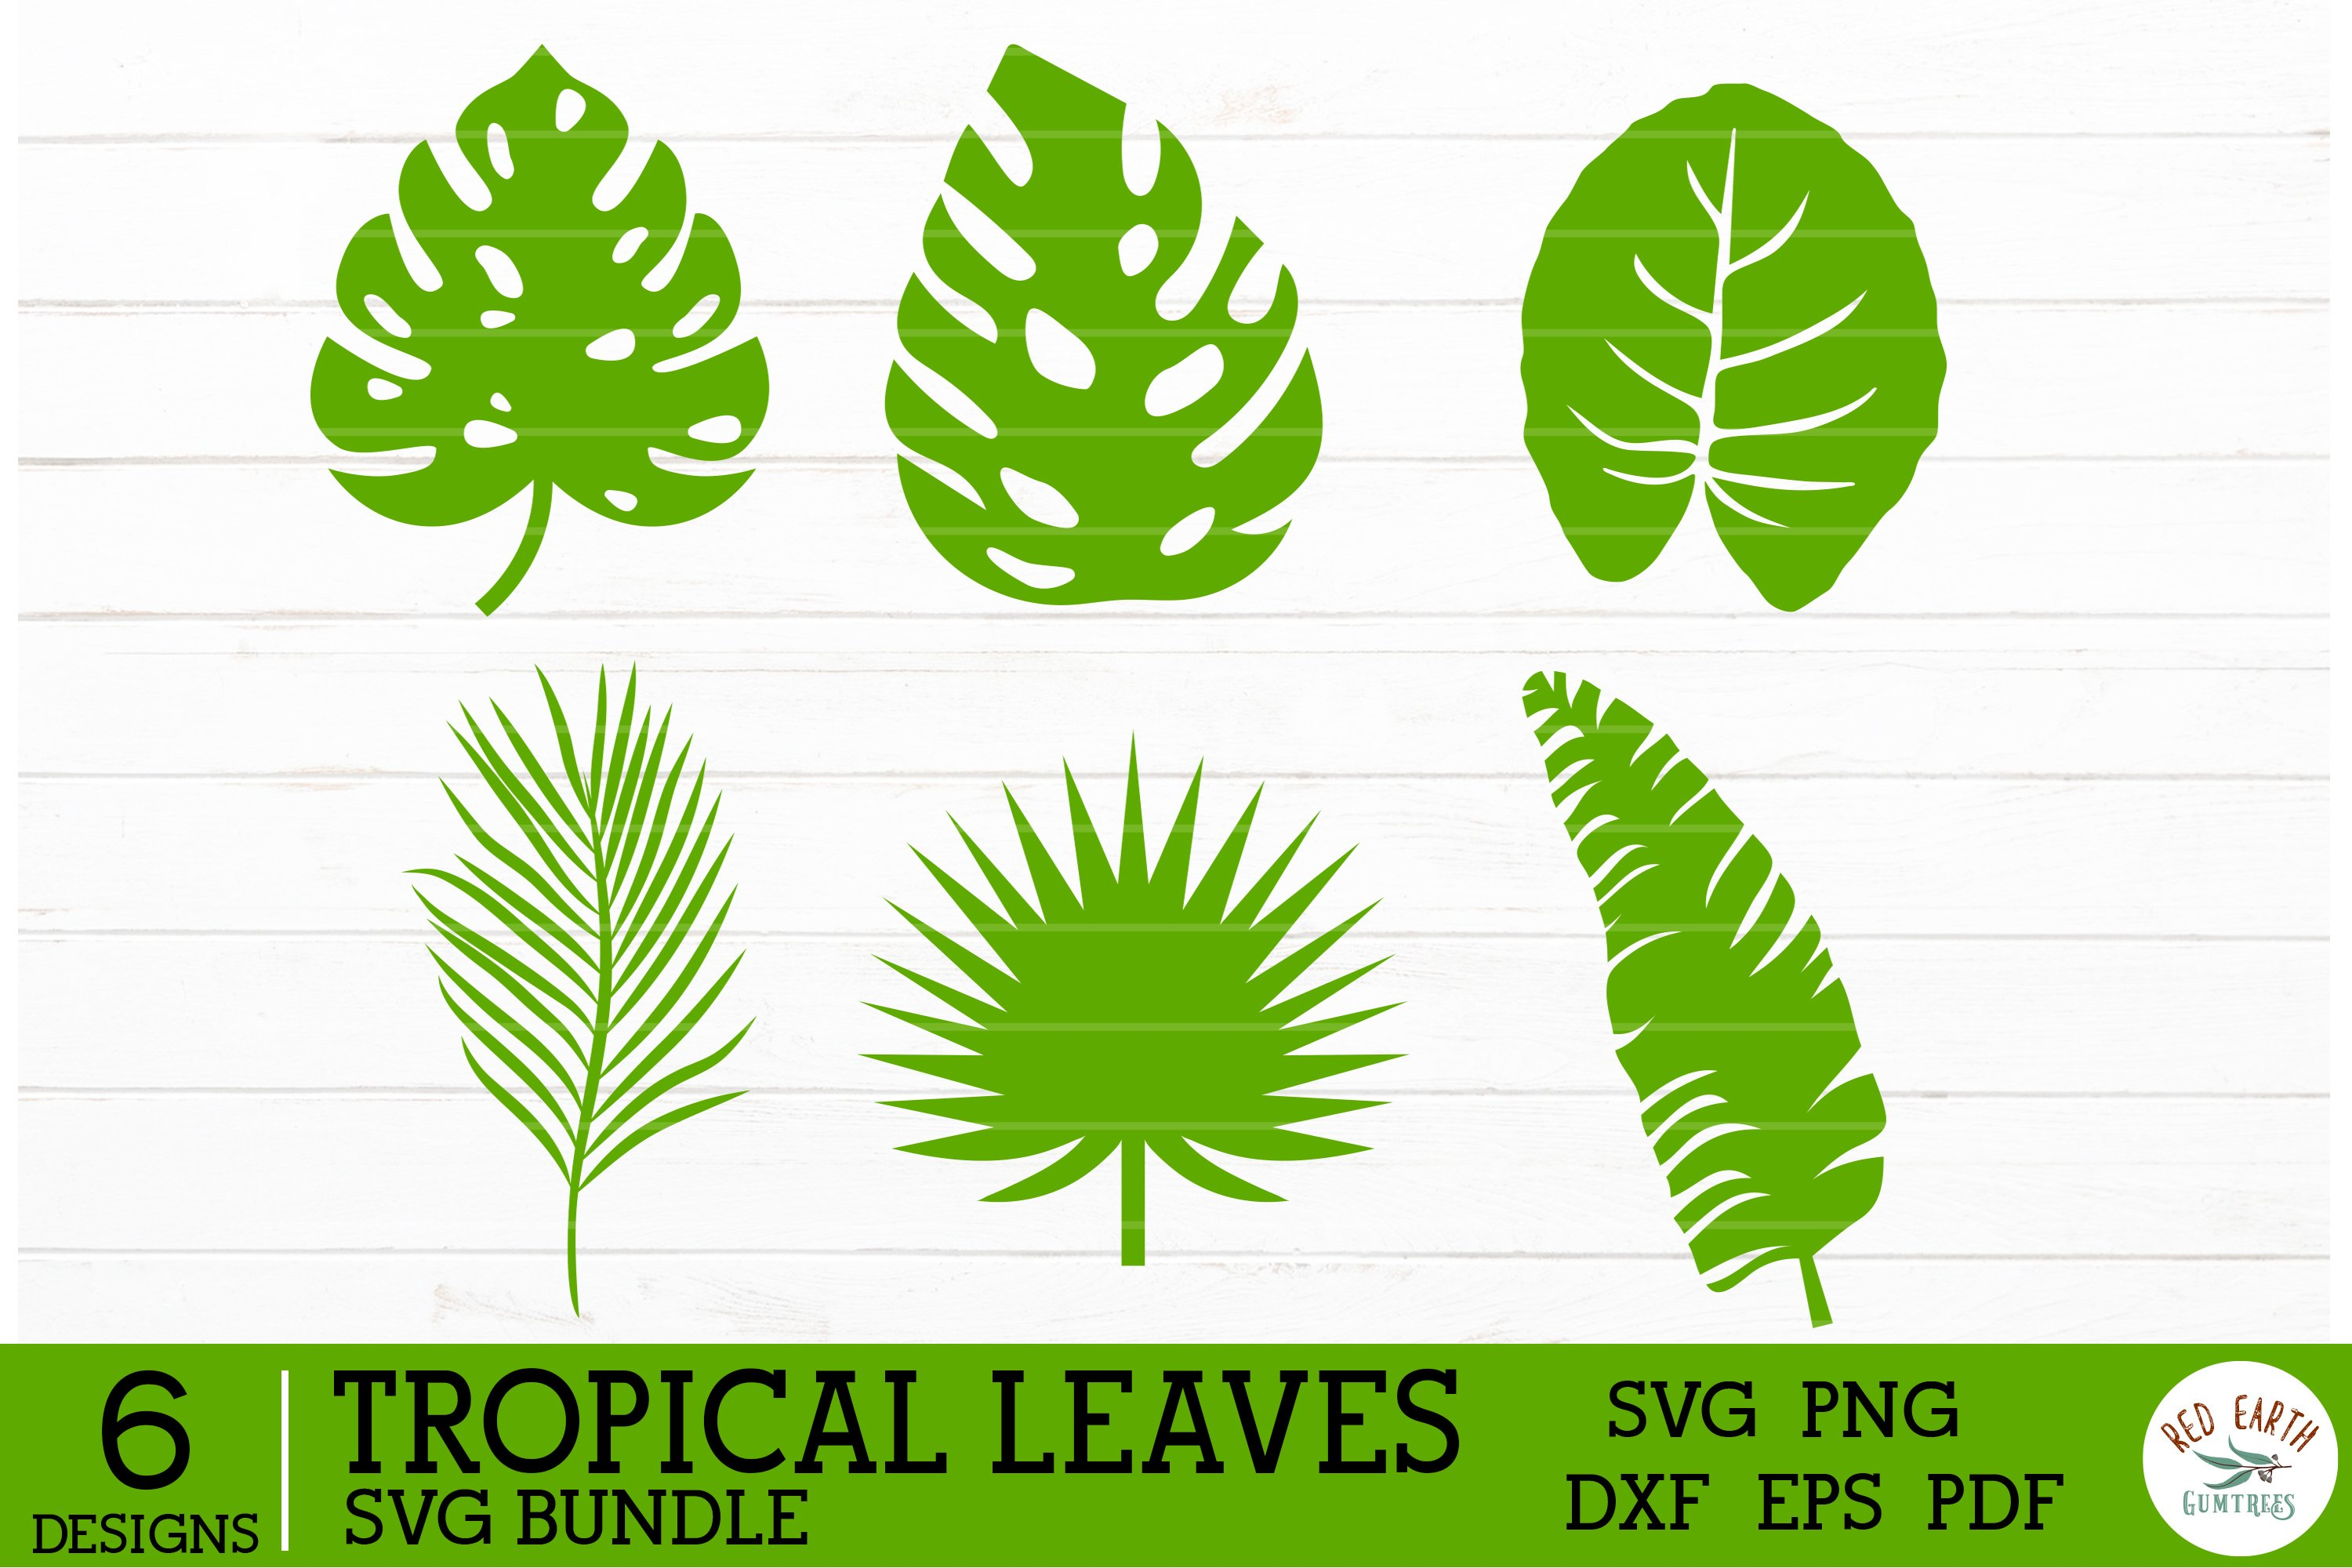 Tropical Leaves Plants Summer Plants In Svg Eps Pdf Dxf 106460 Cut Files Design Bundles Browse online today & order your favorites. tropical leaves plants summer plants in svg eps pdf dxf